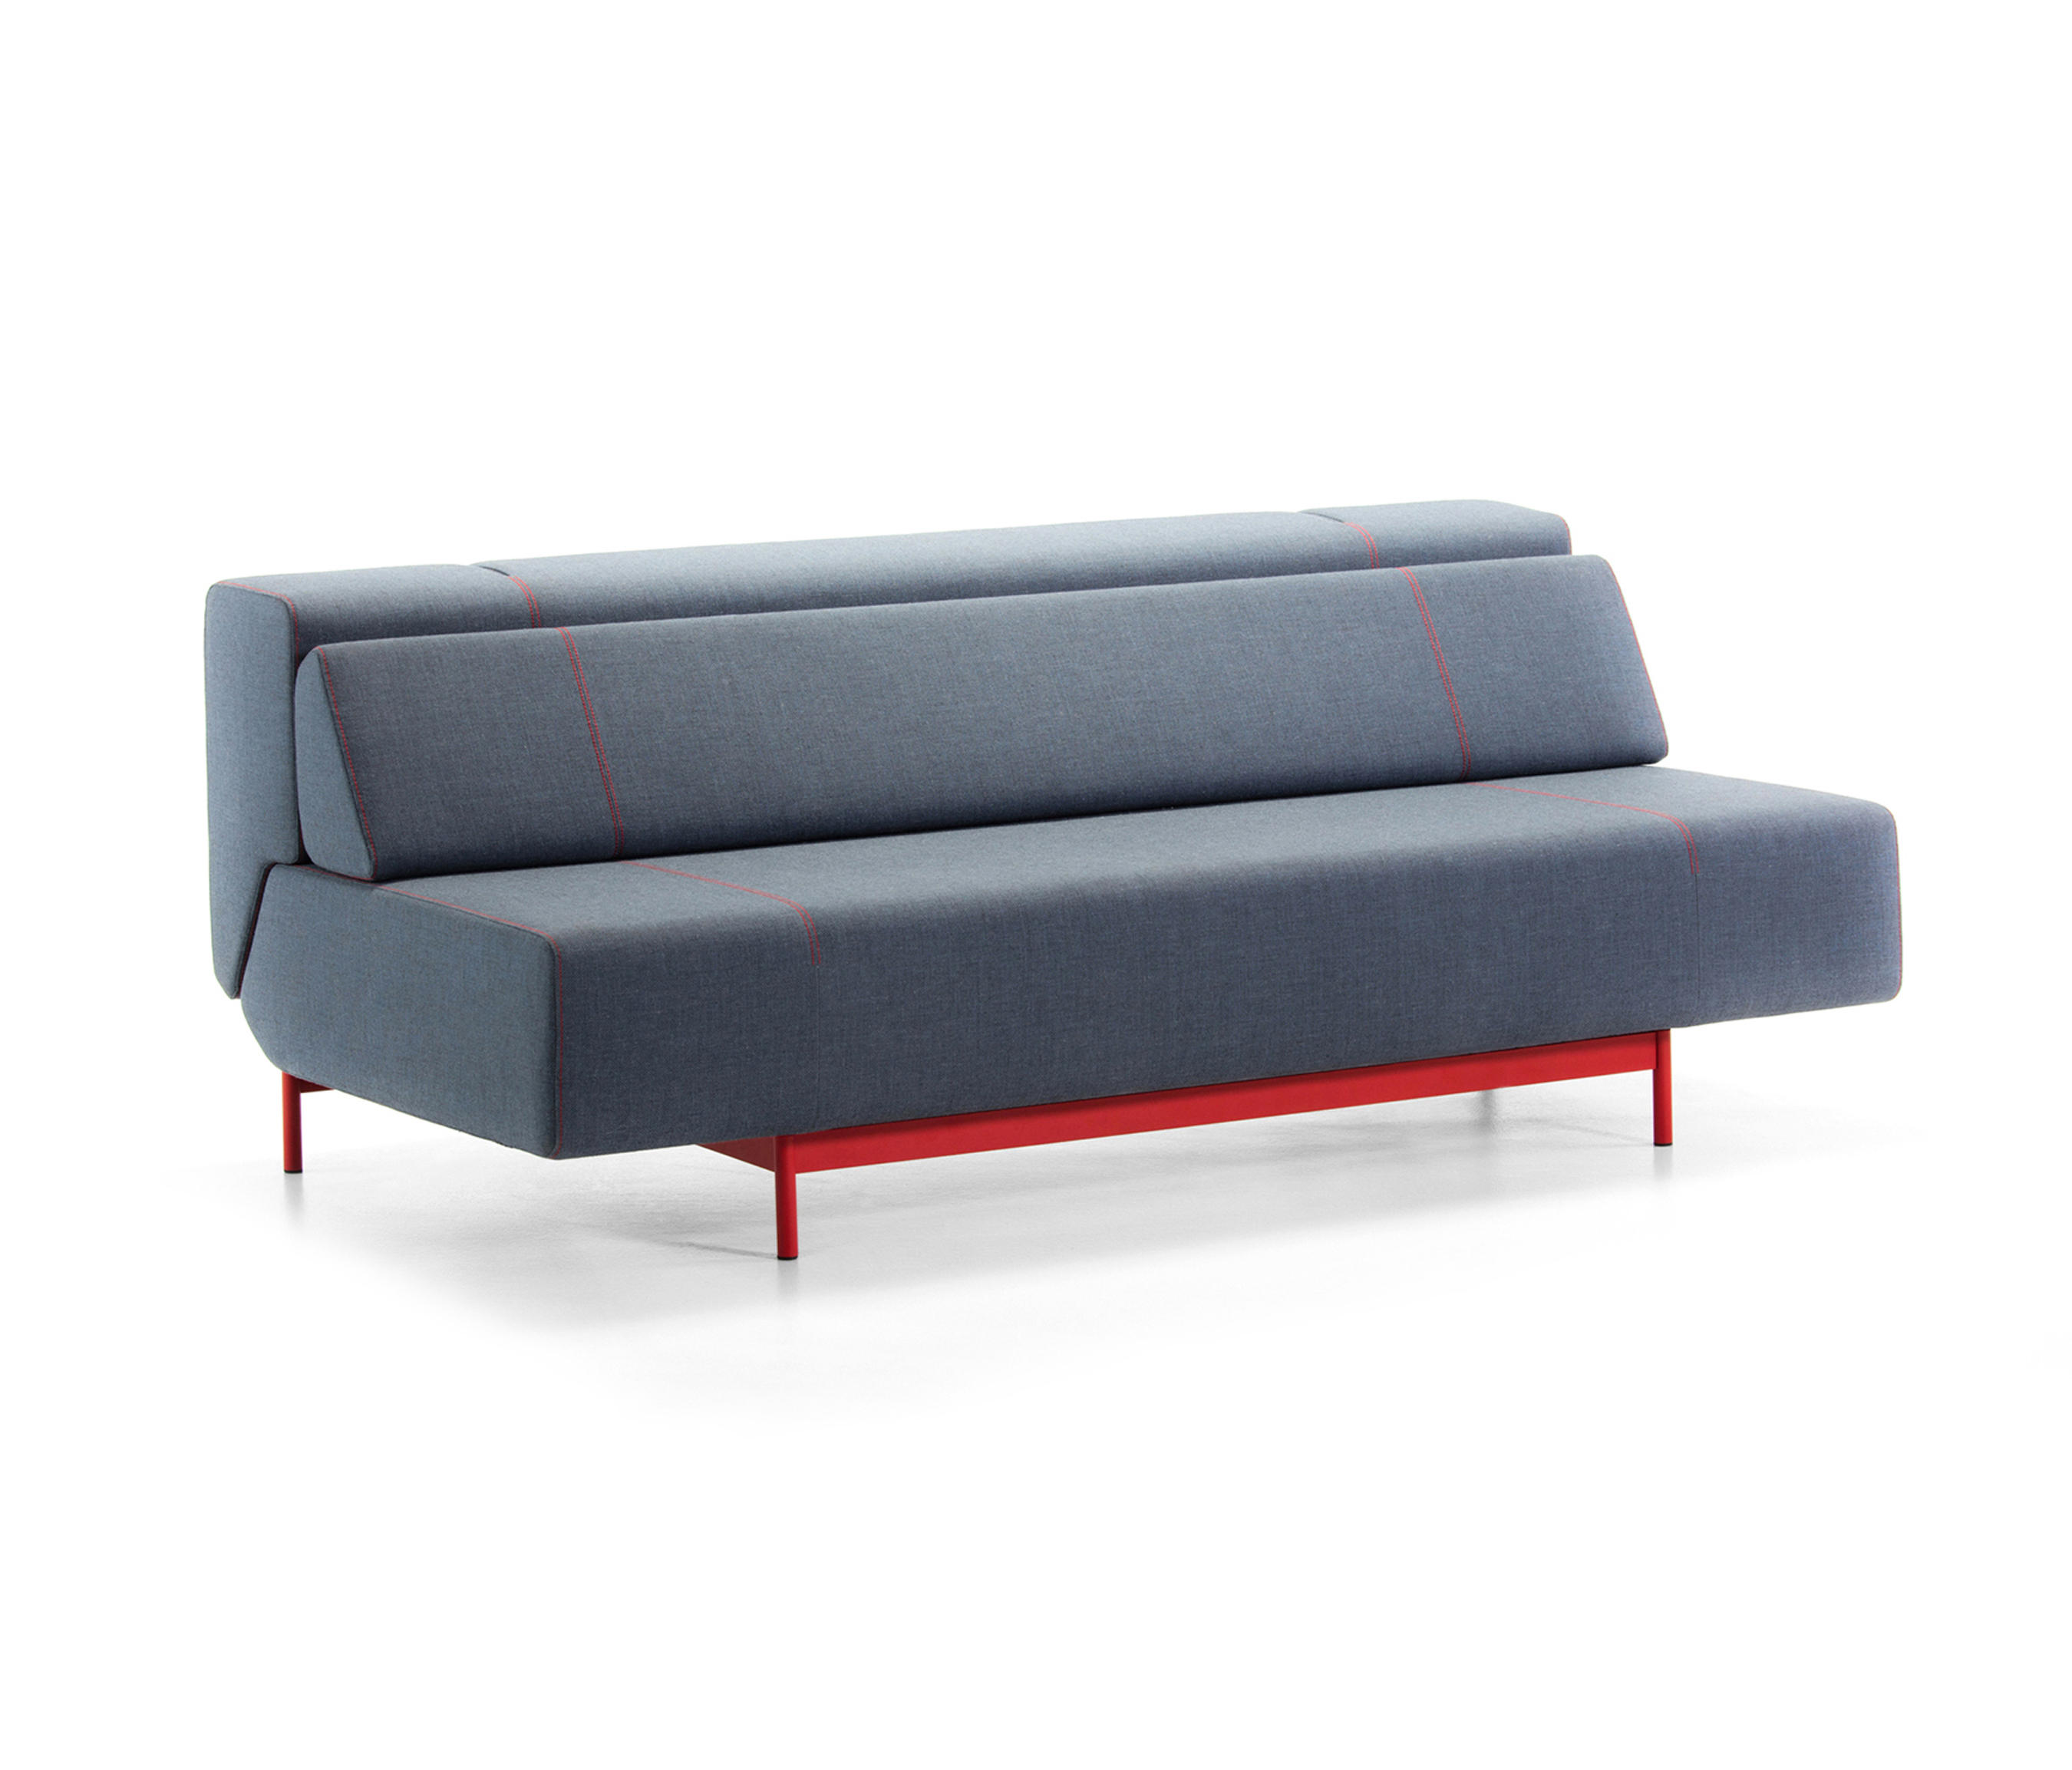 sofa come bed design with low price white company qoo10 123cm hermes sofabed unique